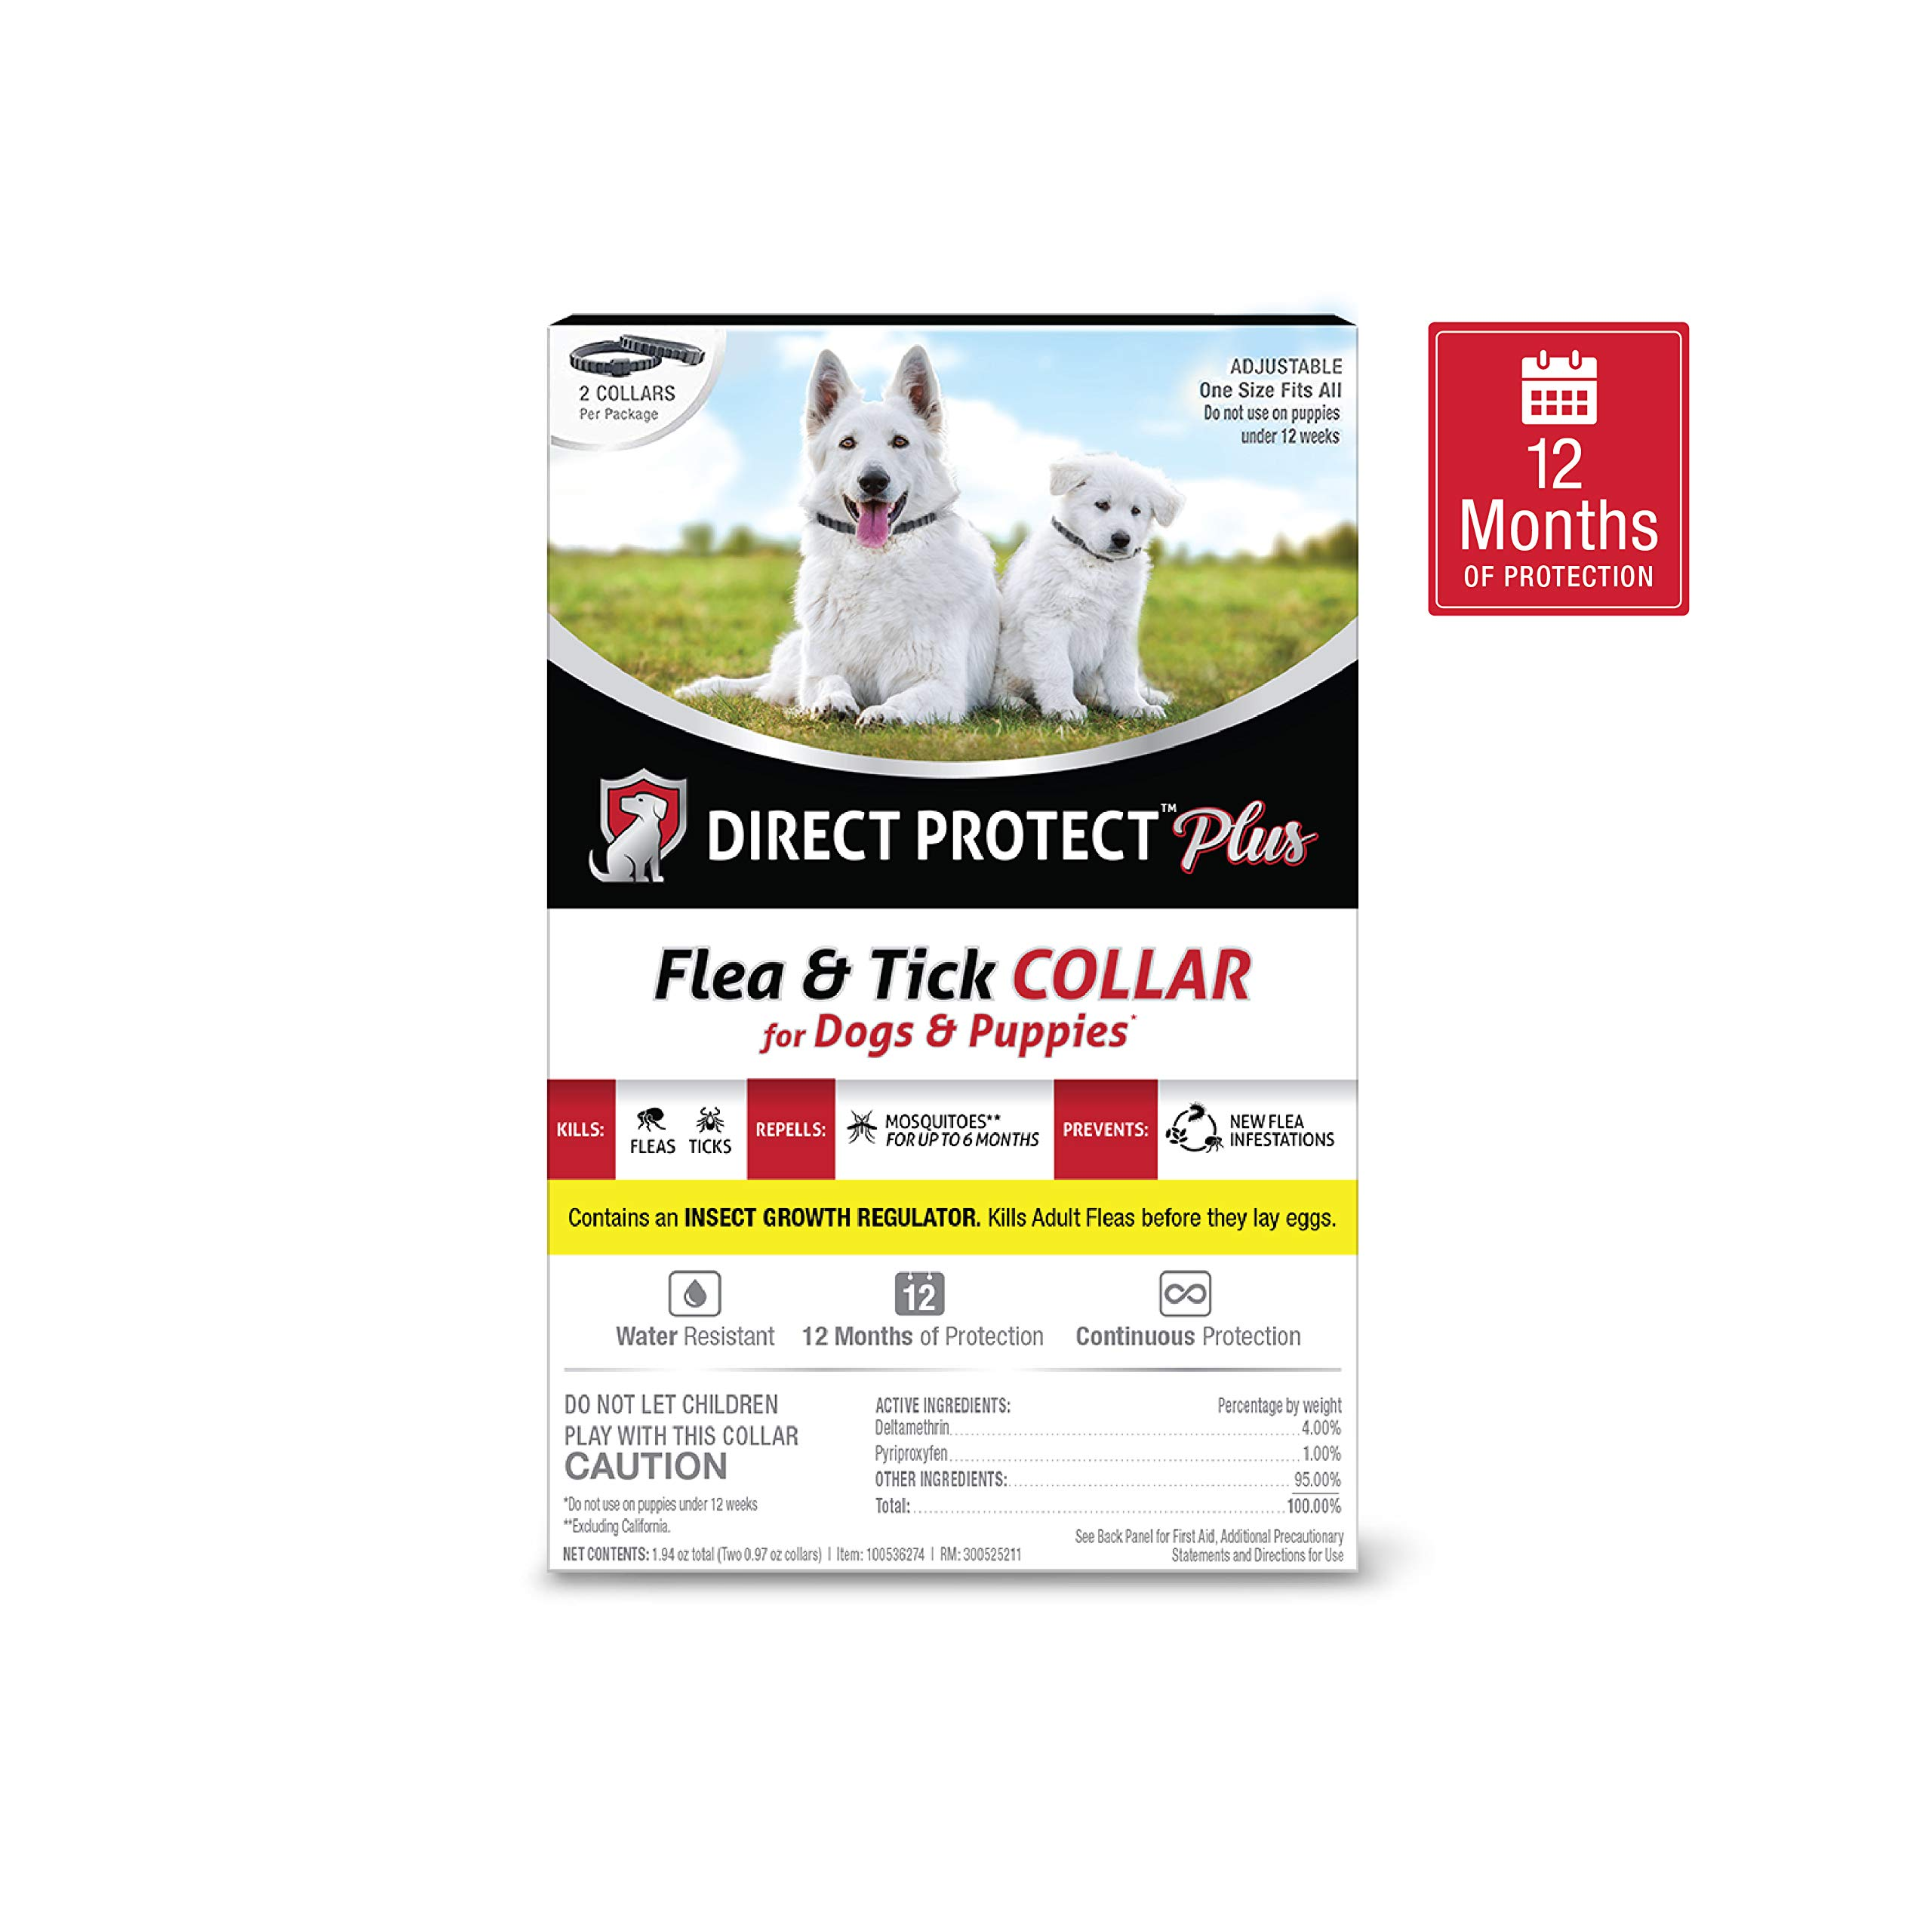 Direct Protect Plus Flea & Tick Collars for Dogs & Puppies, One Size Fits All, 2-Pack, 12 Months Protection by Direct Protect Plus